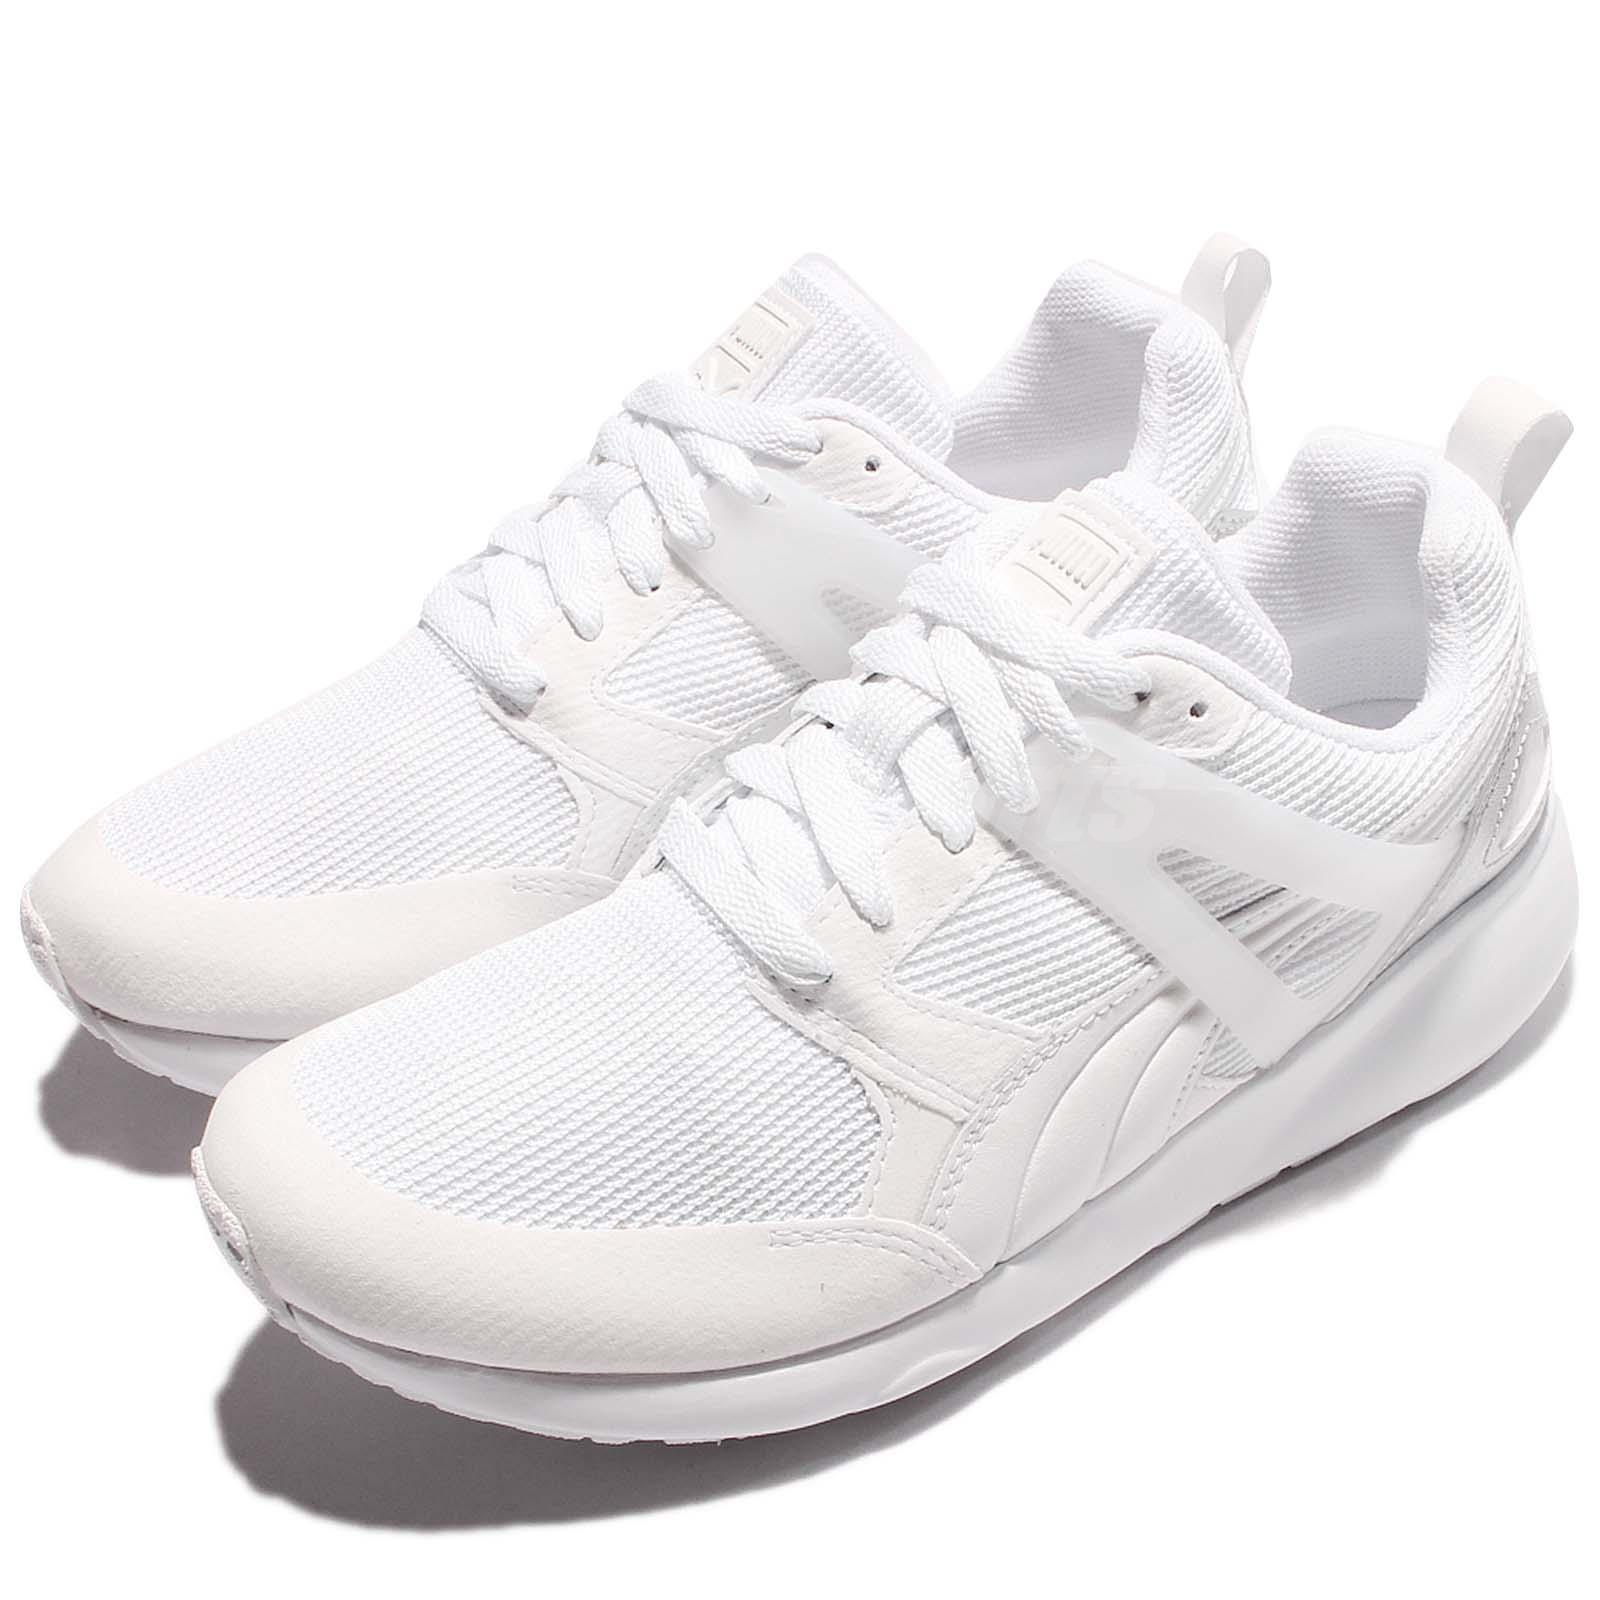 d4deebac4b29 Details about Puma Aril Metallic White Silver Men Running Shoes Lifestyle  Sneakers 364711-02